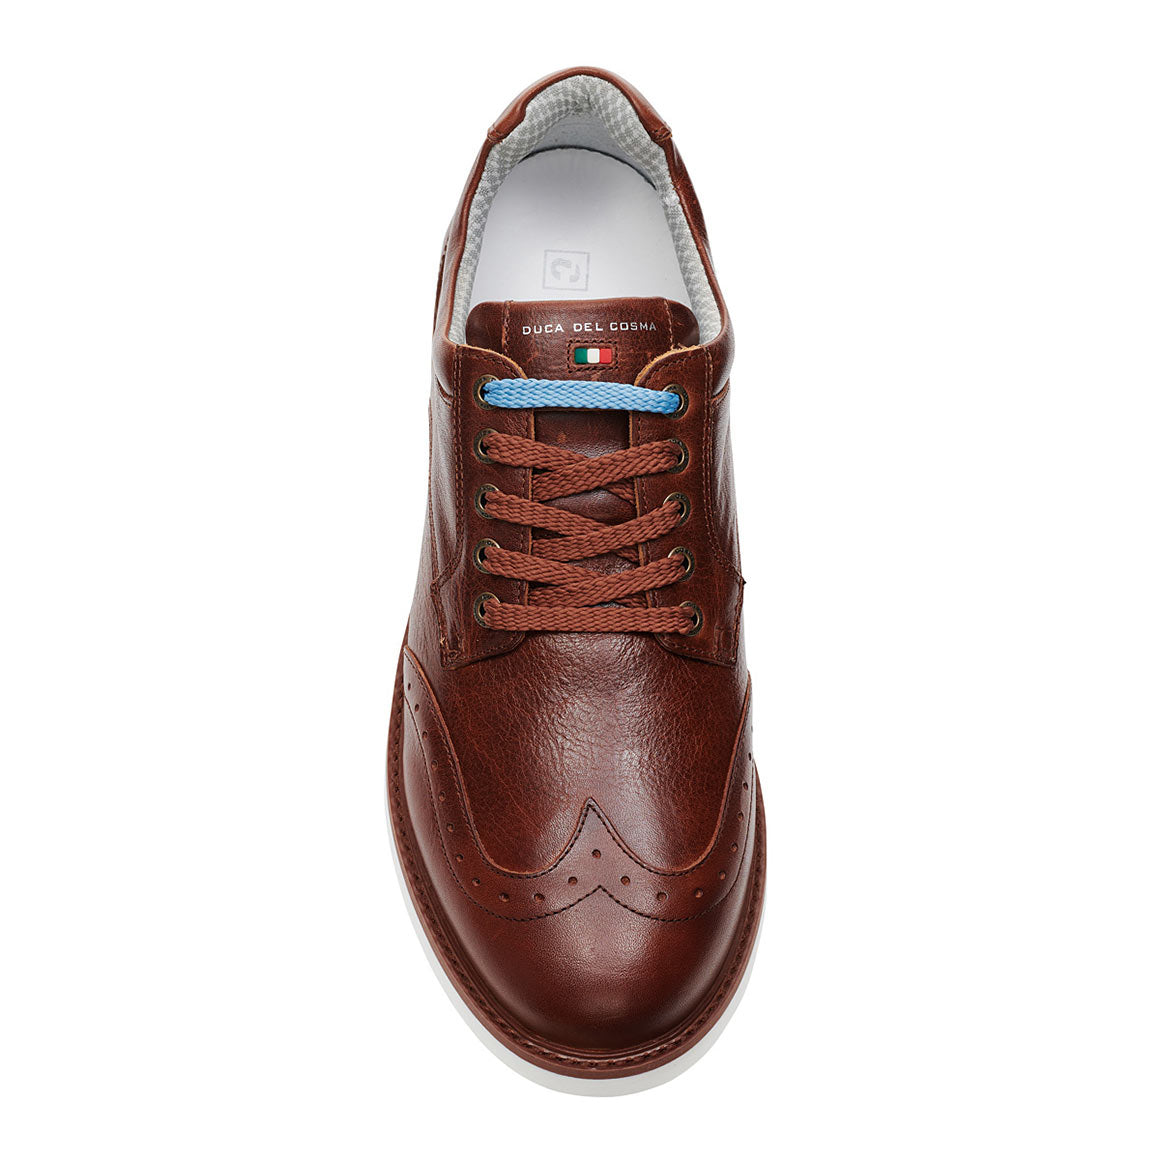 Men's Eldorado Cognac Golf Shoe